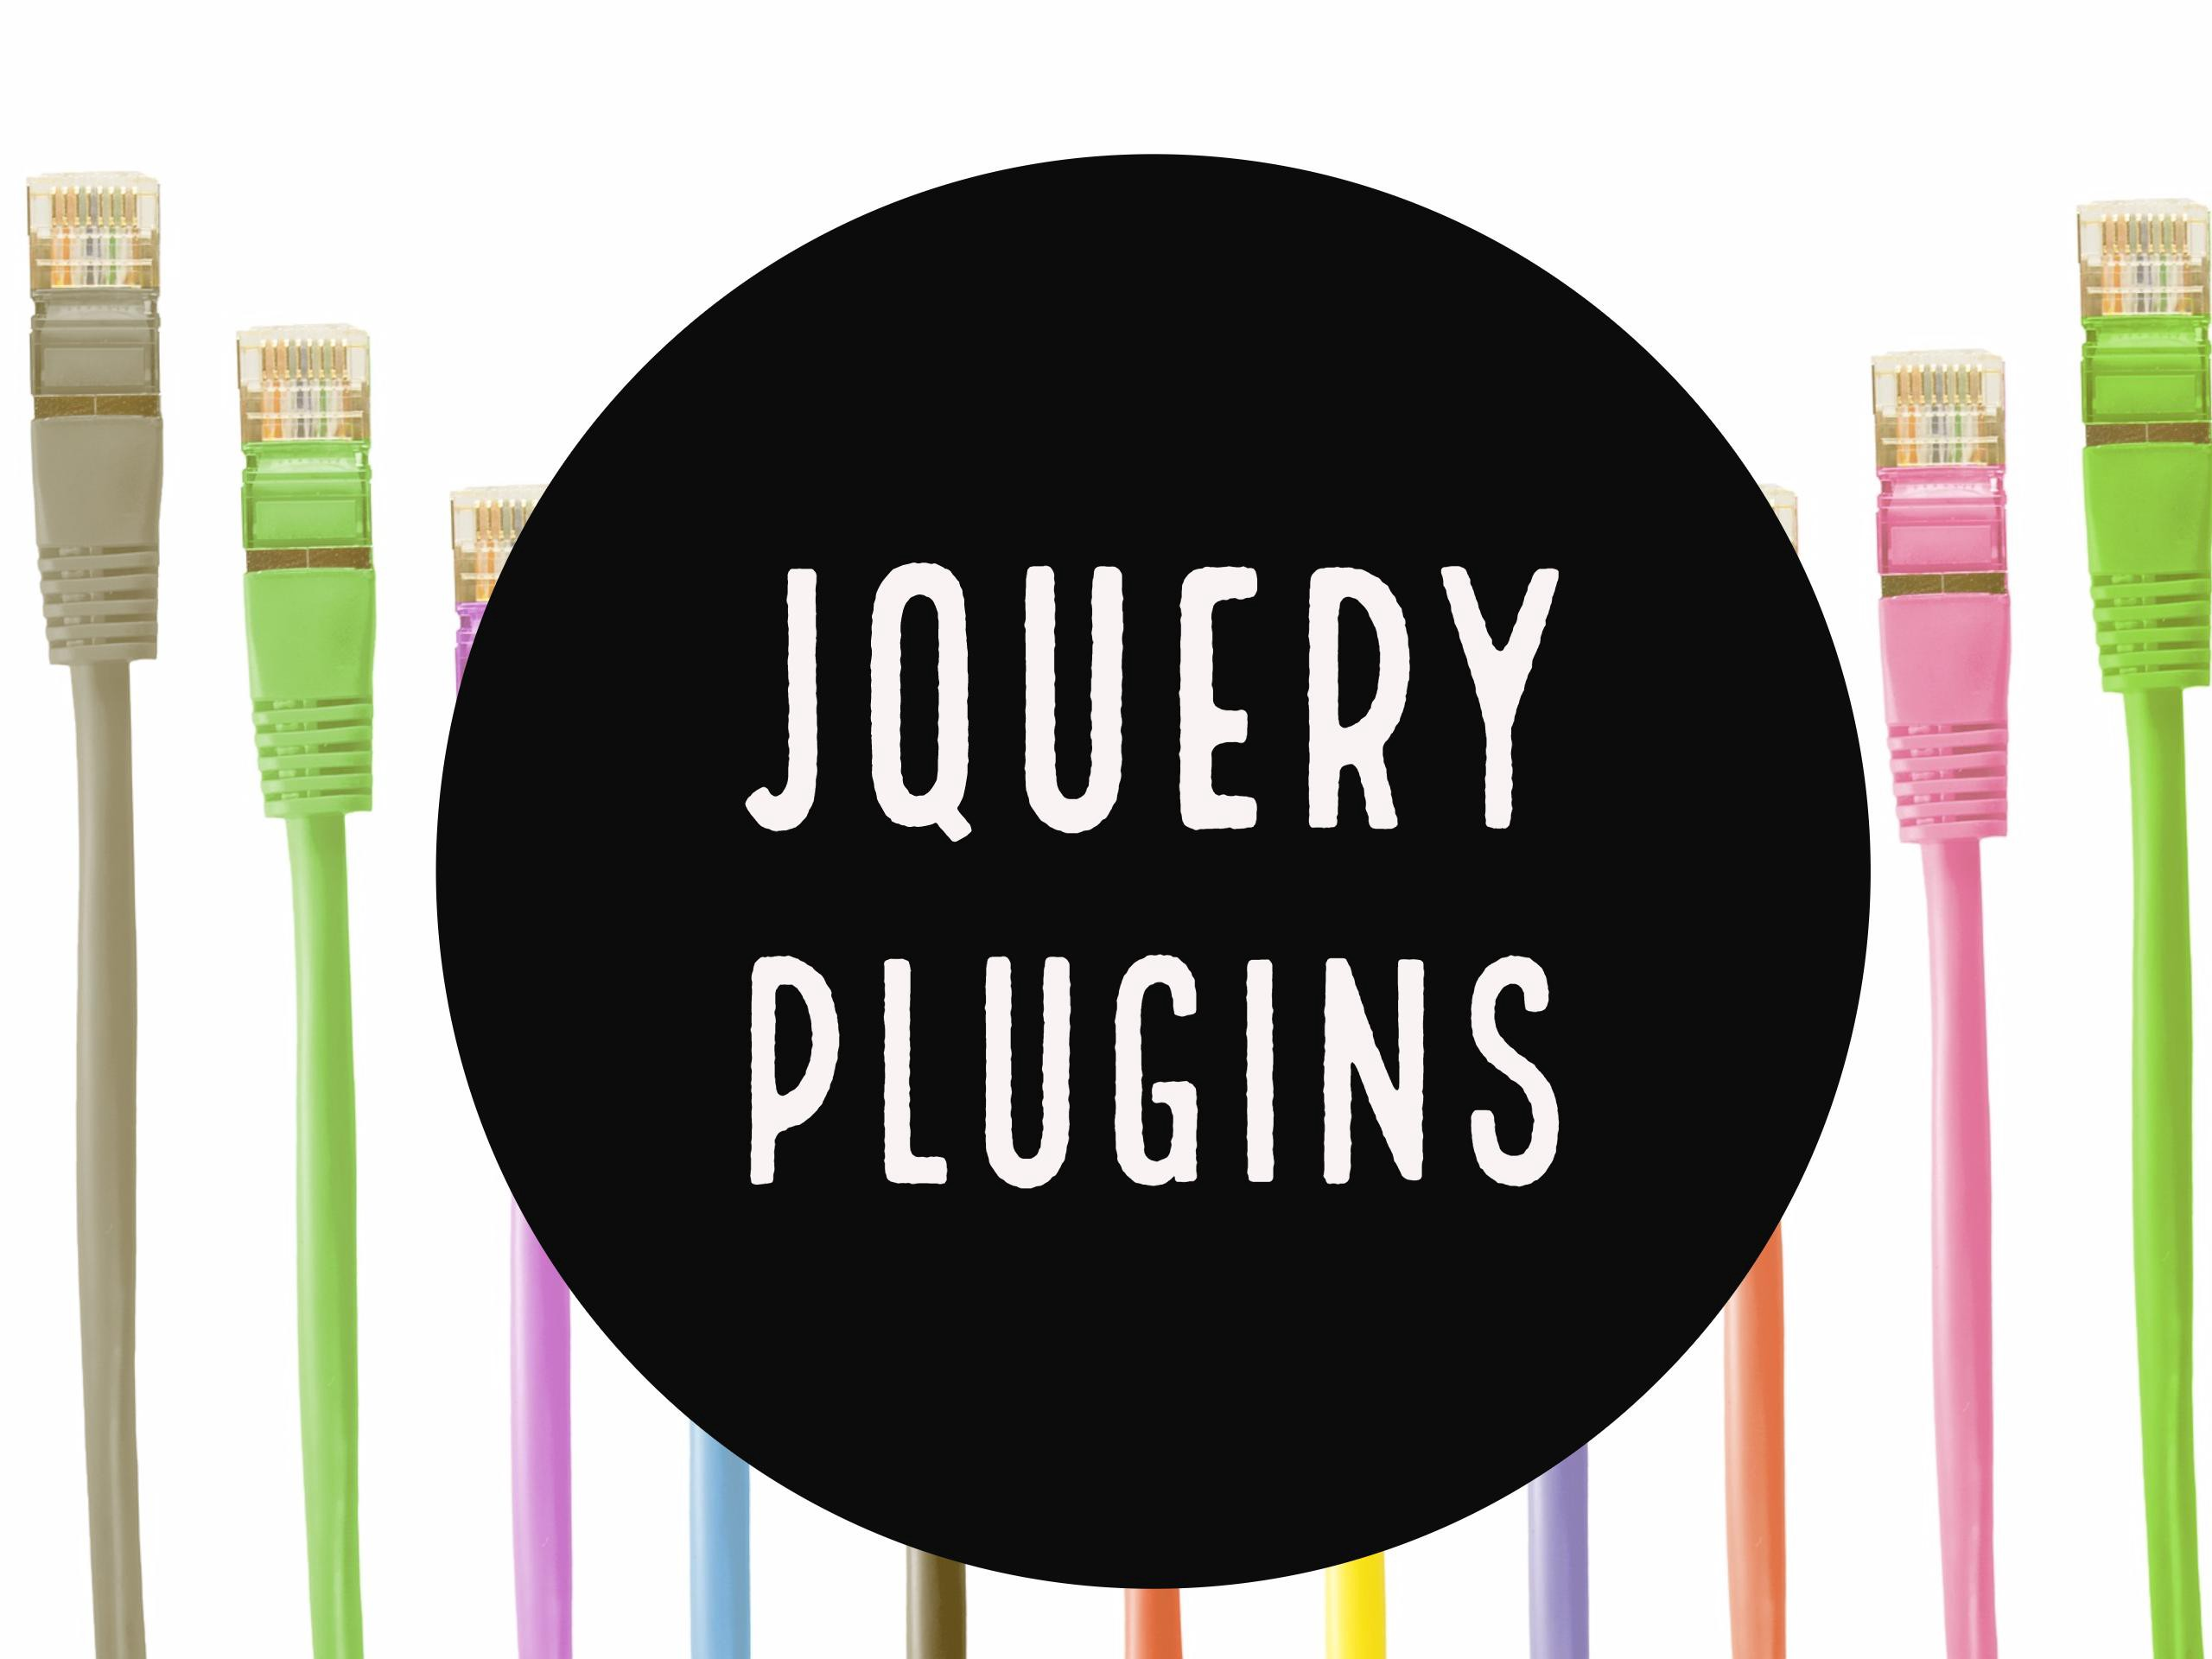 Top 10 jQuery plugins to simplify front-end development